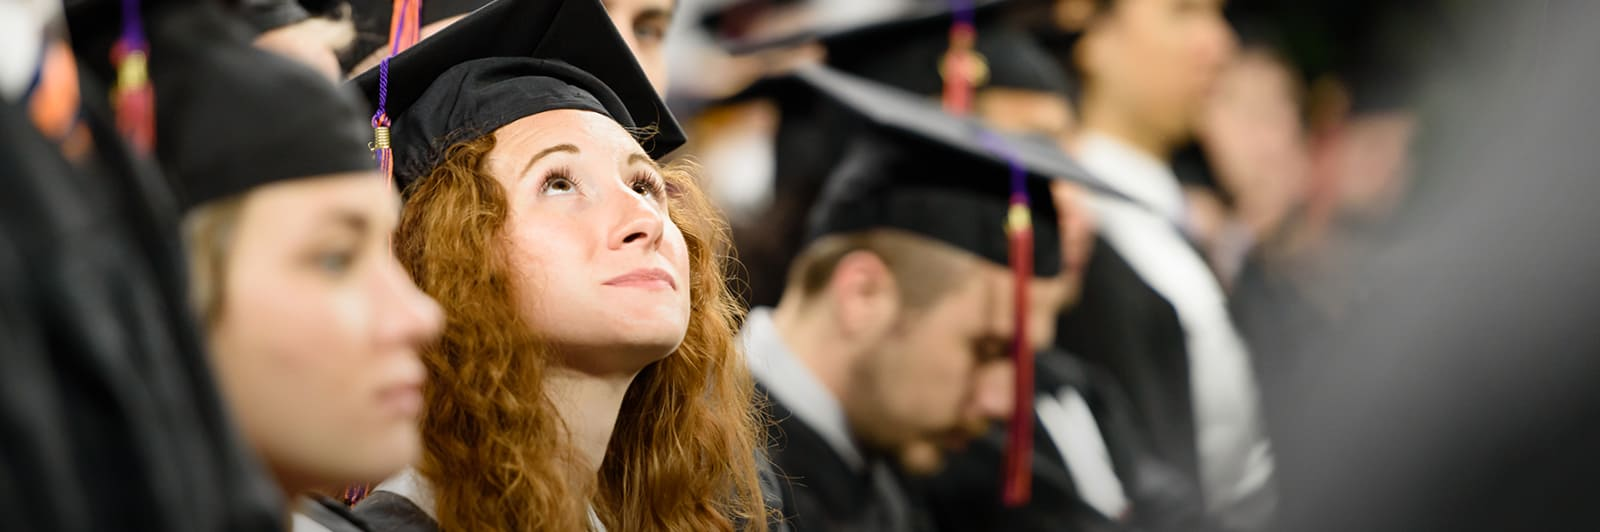 student wearing a cap and gown looks up while participating in a Clemson graduation ceremony.